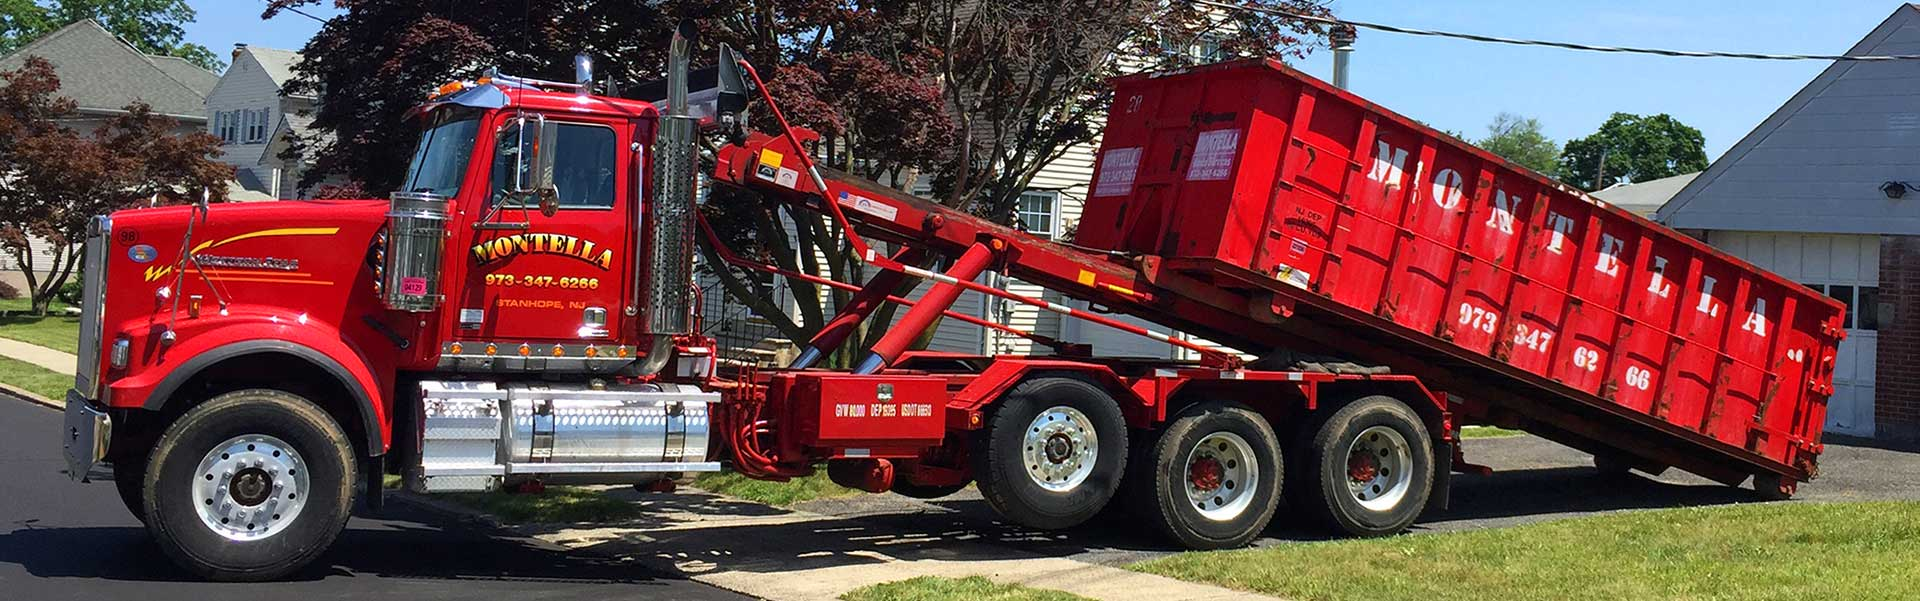 Roll Off Dumpster Sizes & Dimensions | NJ Dumpster Rentals